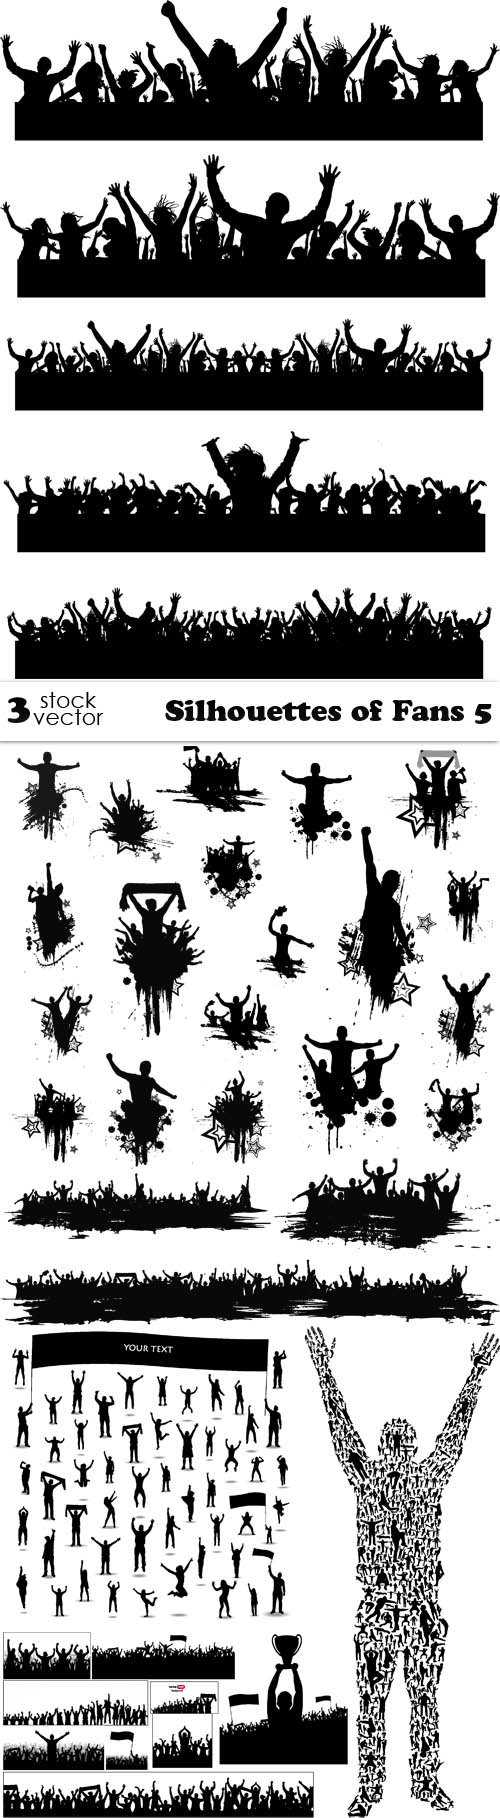 Vectors - Silhouettes of Fans 5